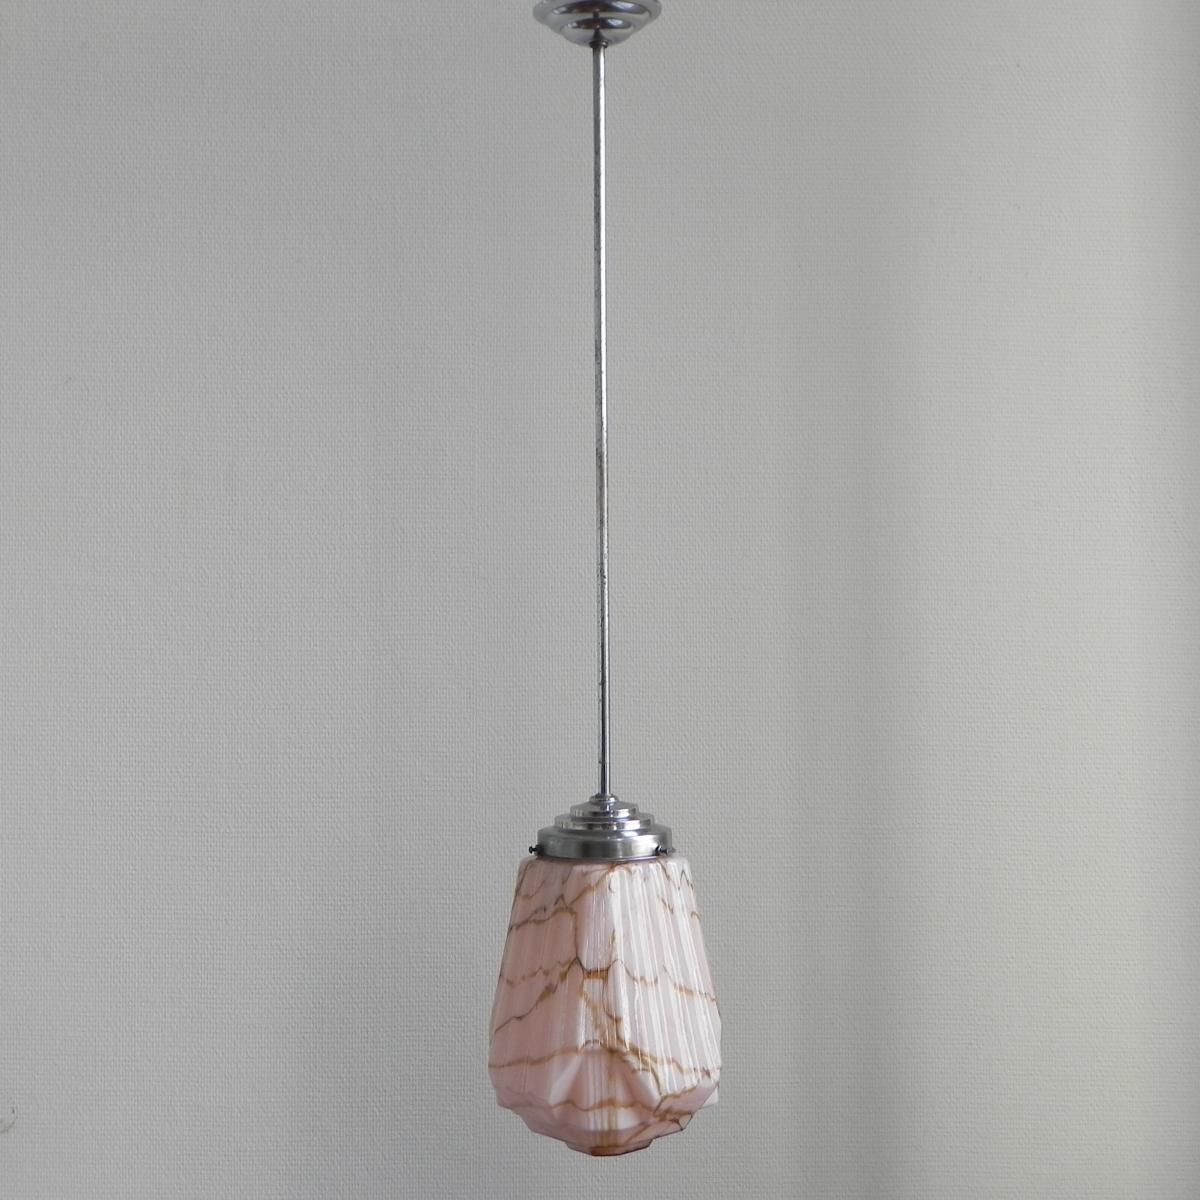 Art Deco Hanging Lamp Pink Glass Shade 1930s